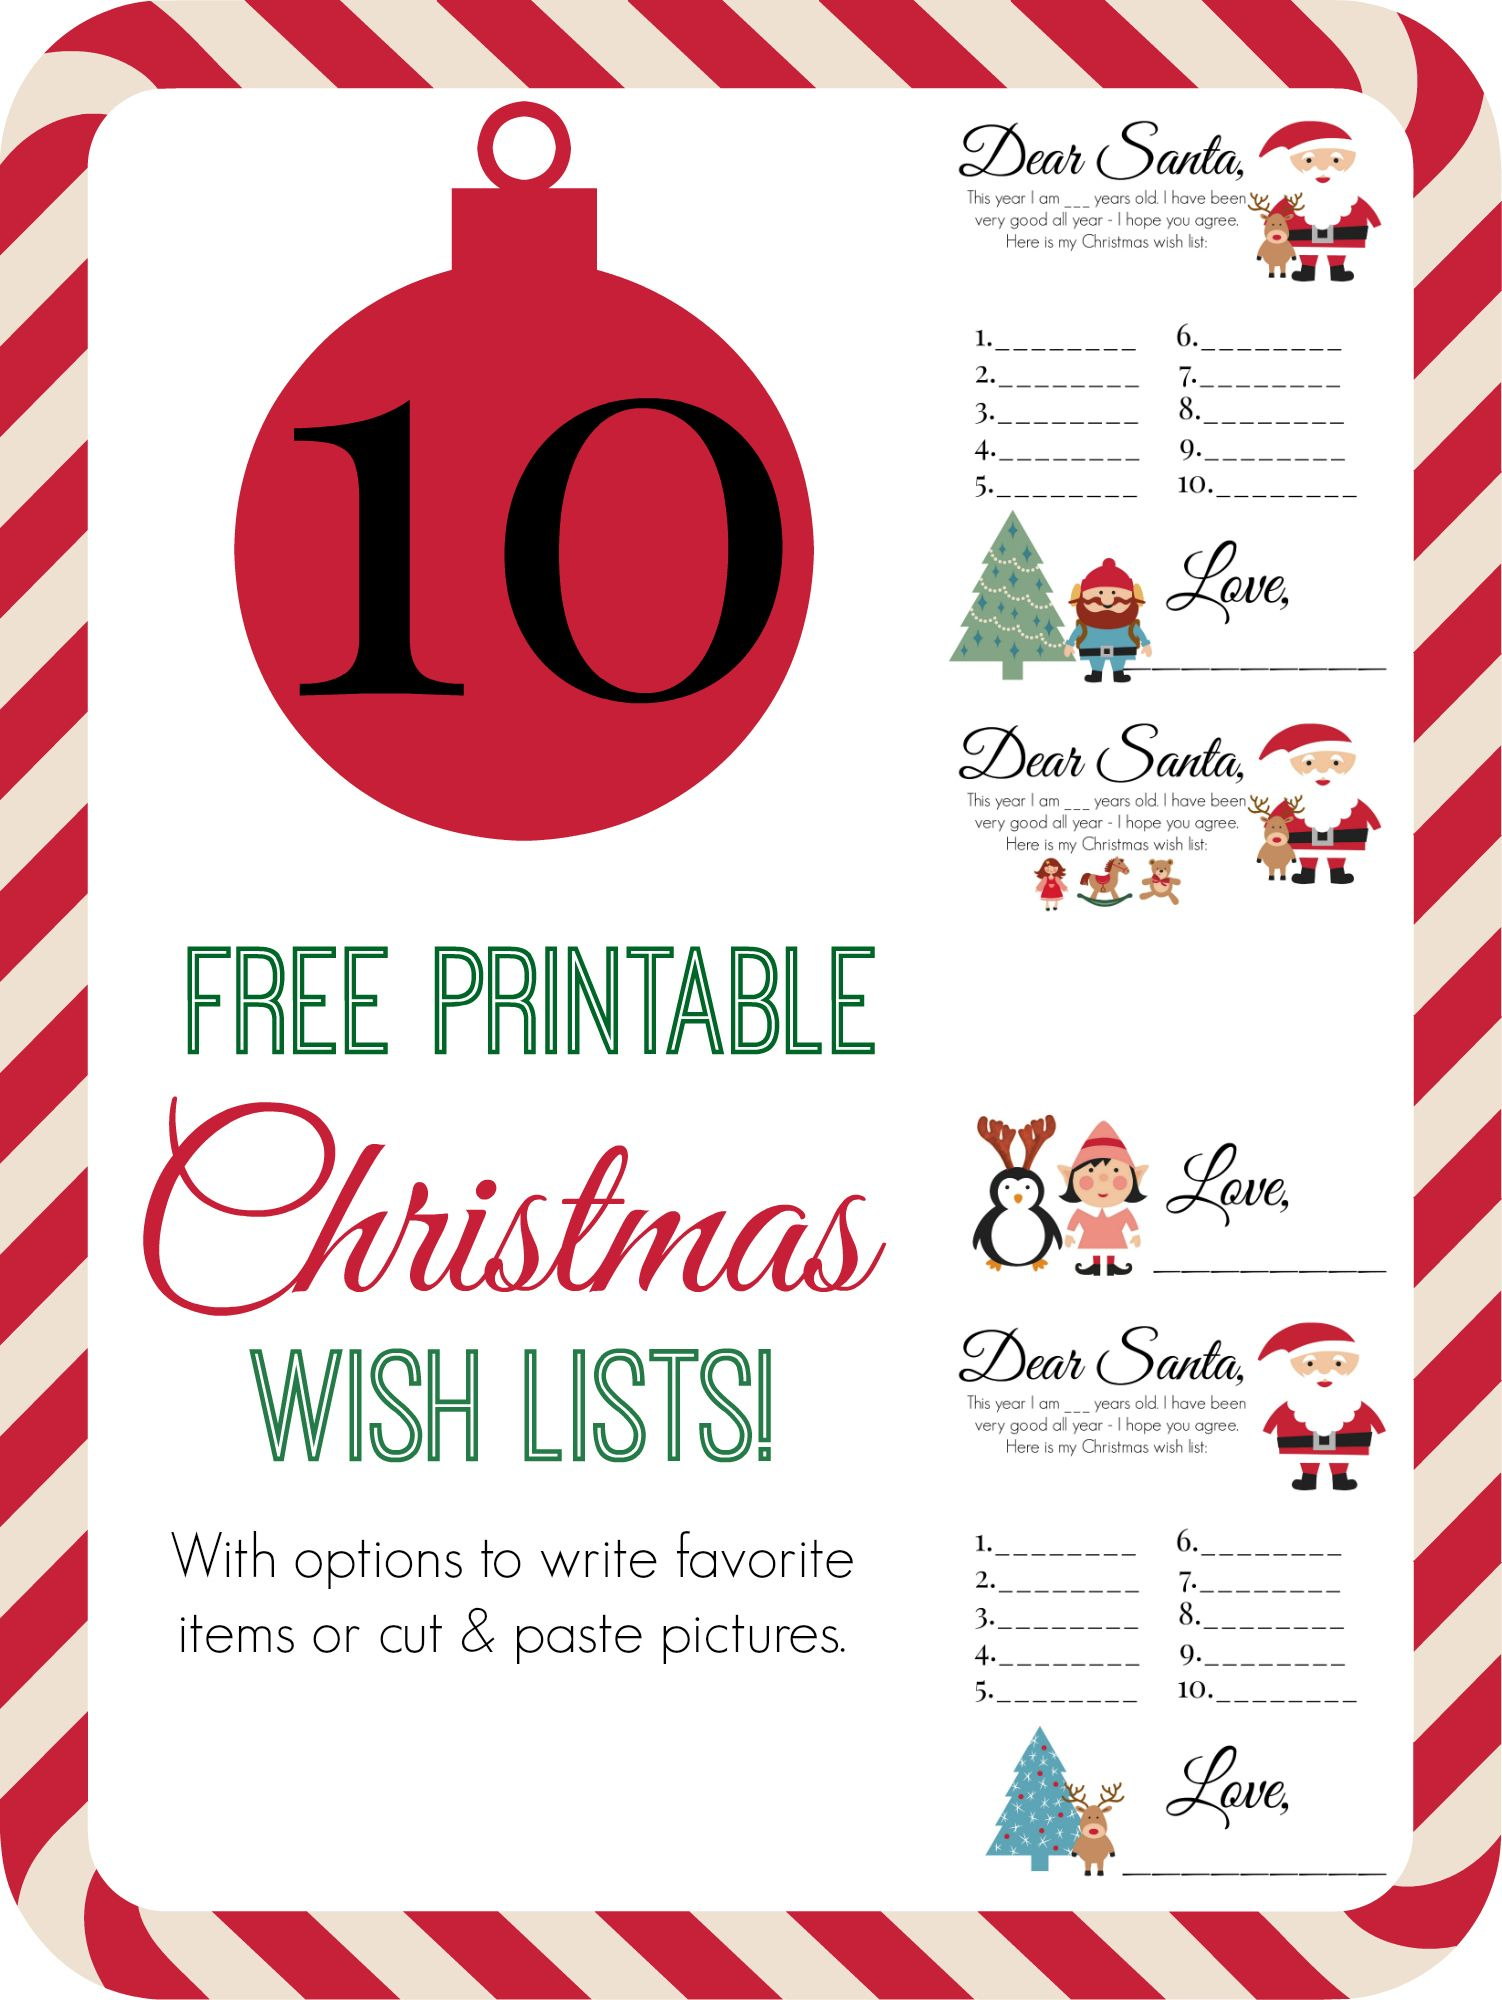 Free Printable Christmas Wish Lists  My Best Pins